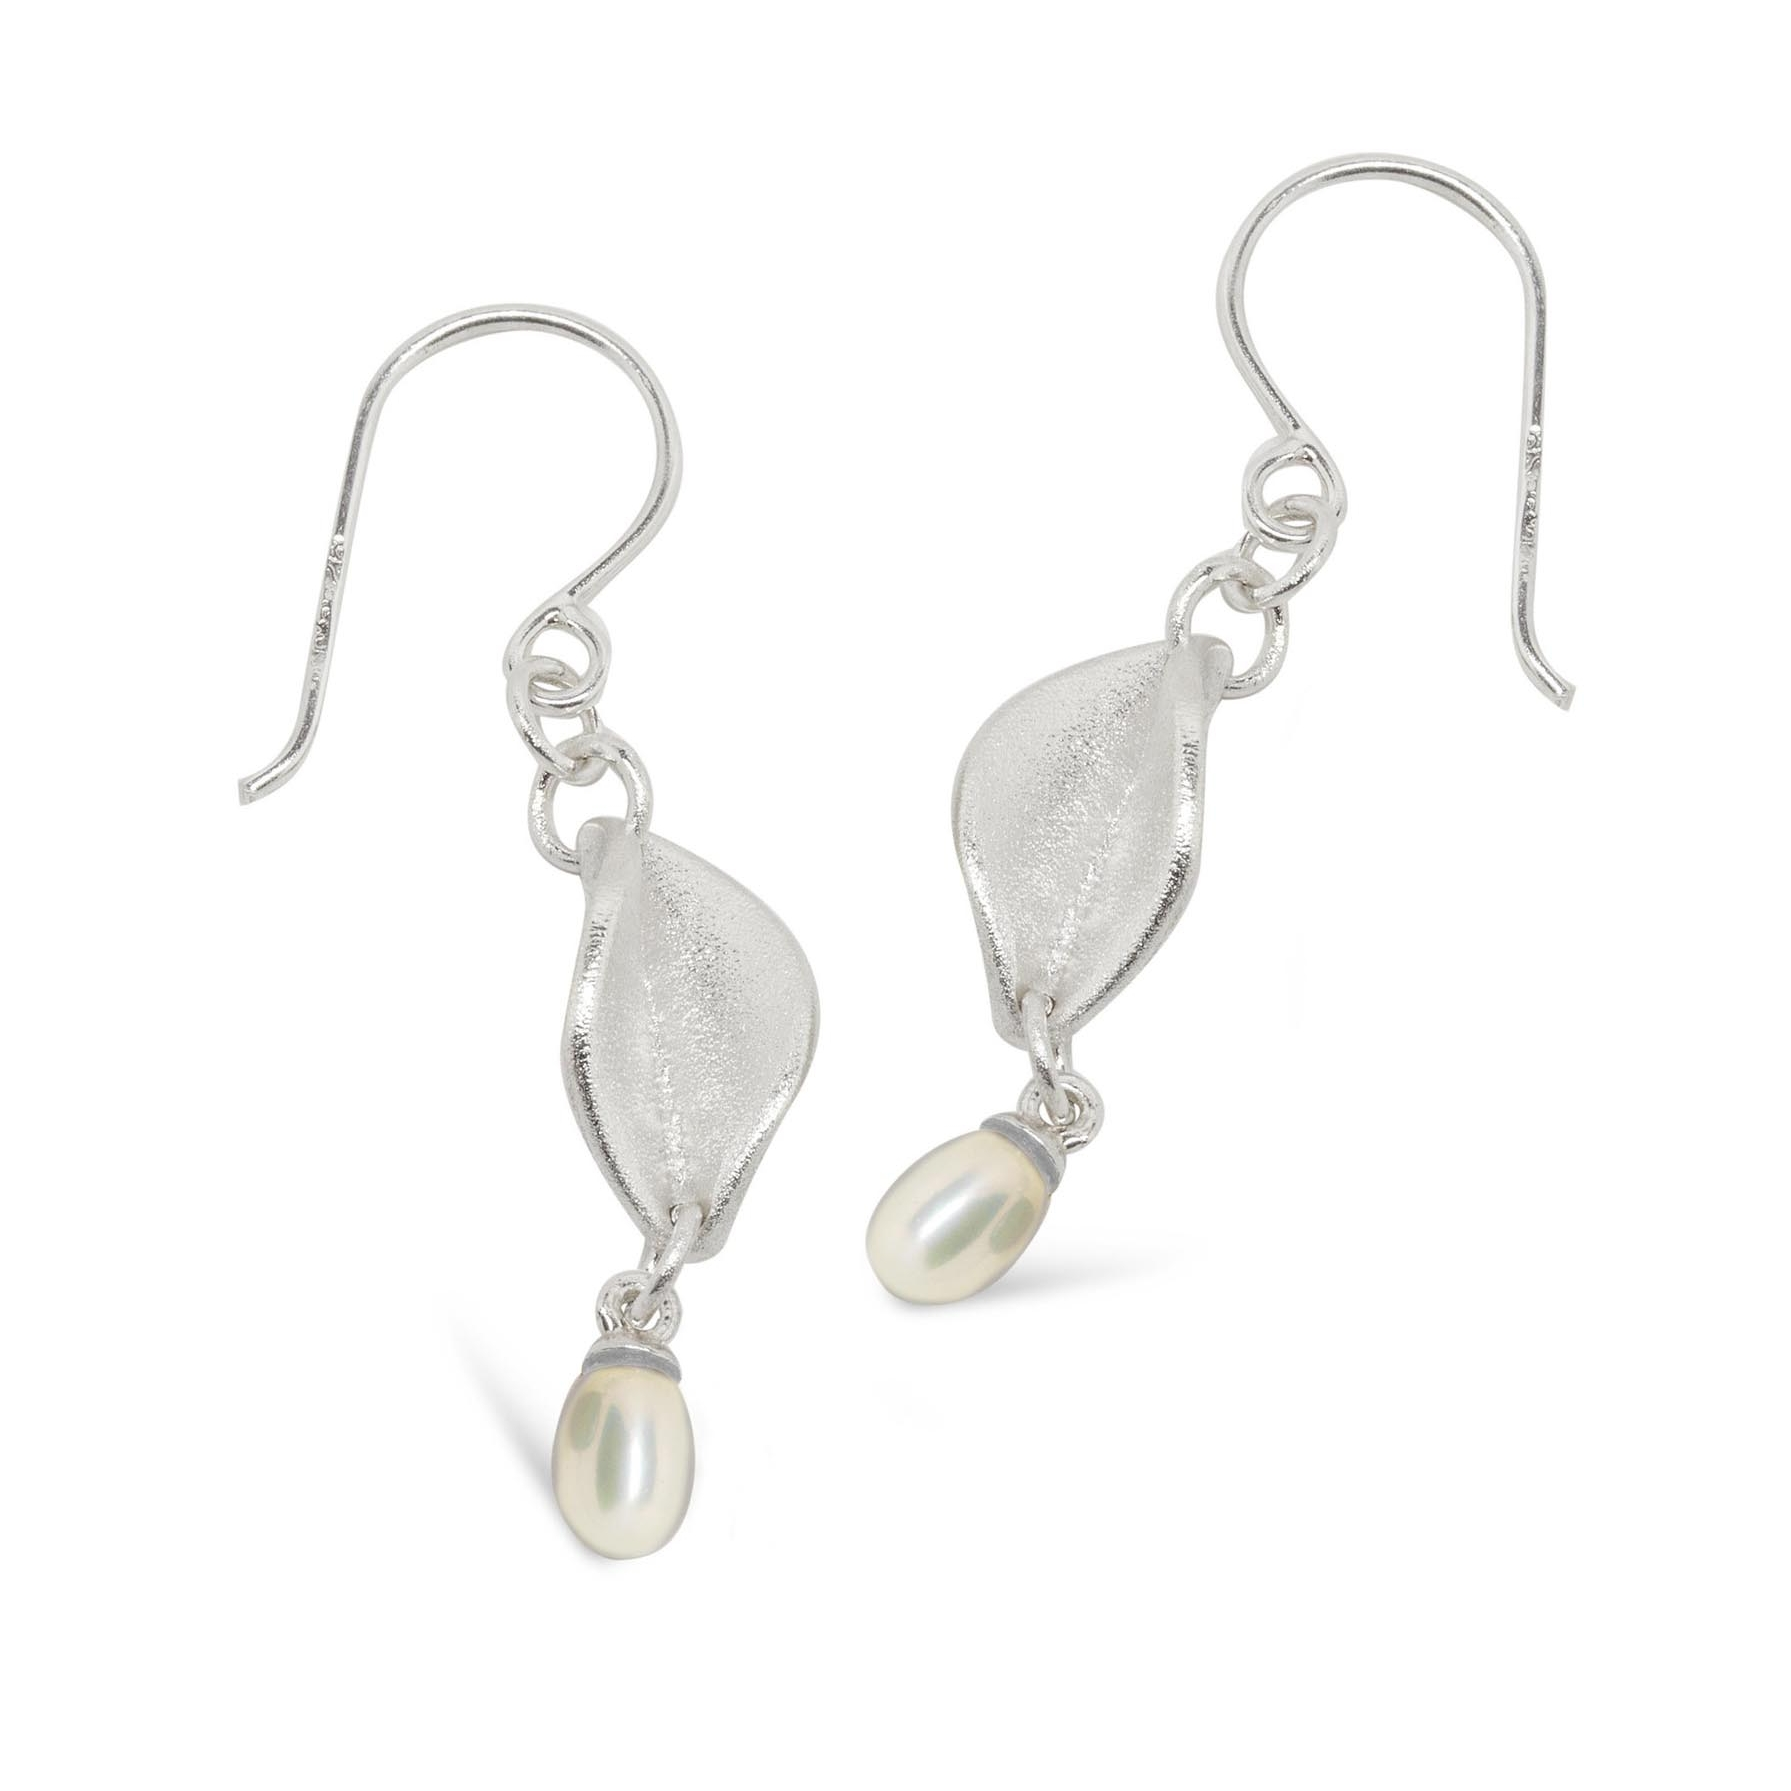 LSD2P_Mavilo_Small_Leaf_Drop_Earrings_with_Drop_Pearl_Silver.jpg